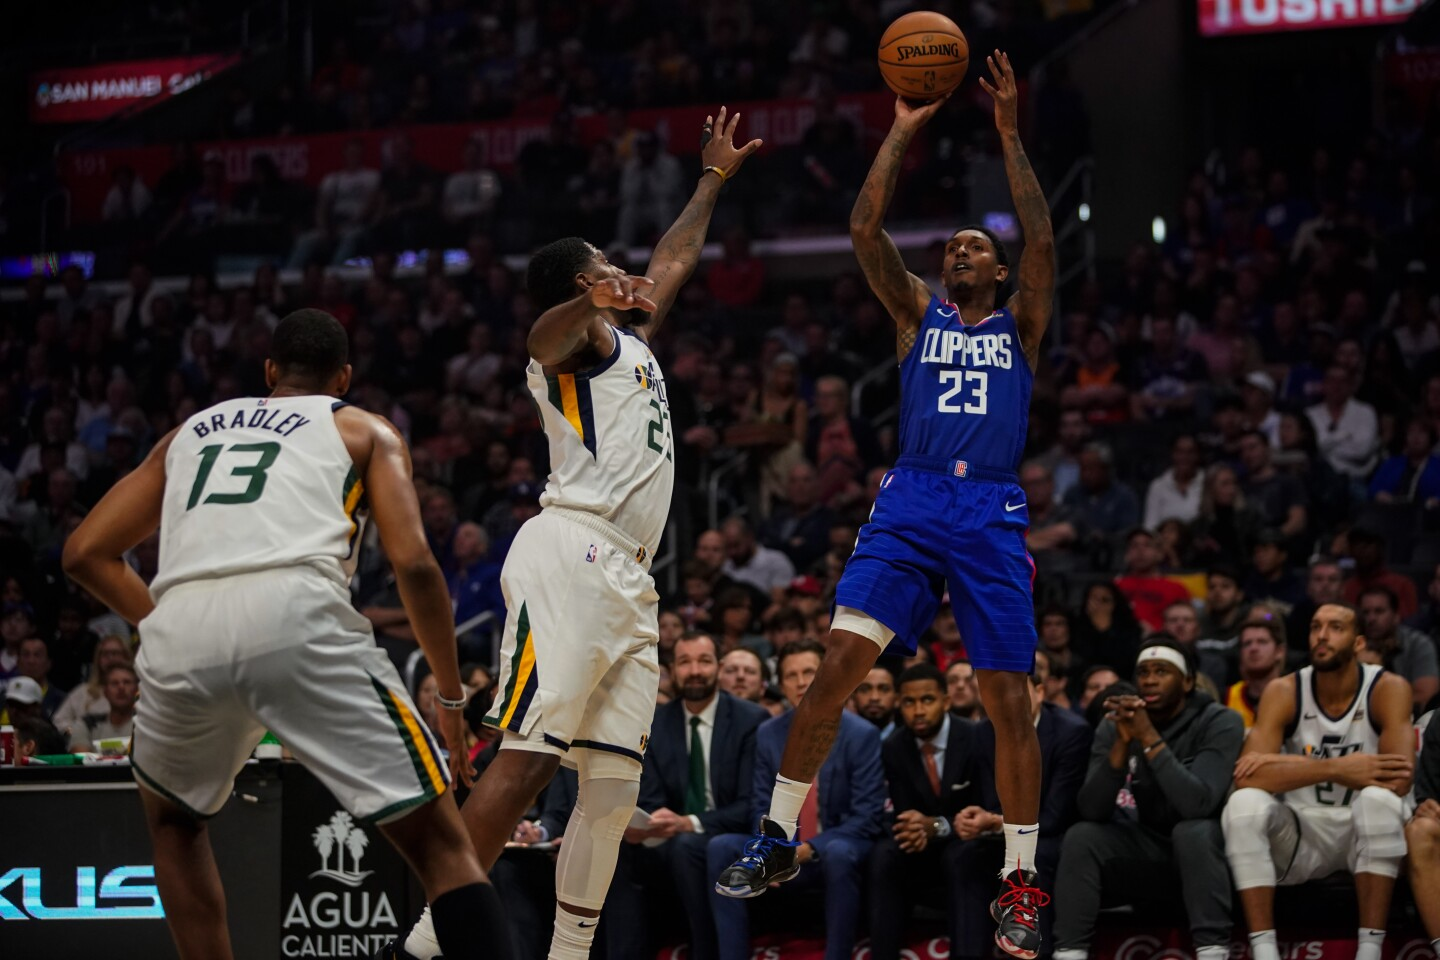 LOS ANGELES, CALIF. - NOVEMBER 03: LA Clippers guard Lou Williams (23) shoots the ball during a NBA game between the Utah Jazz and the LA Clippers at Staples Center on Sunday, Nov. 3, 2019 in Los Angeles, Calif. (Kent Nishimura / Los Angeles Times)